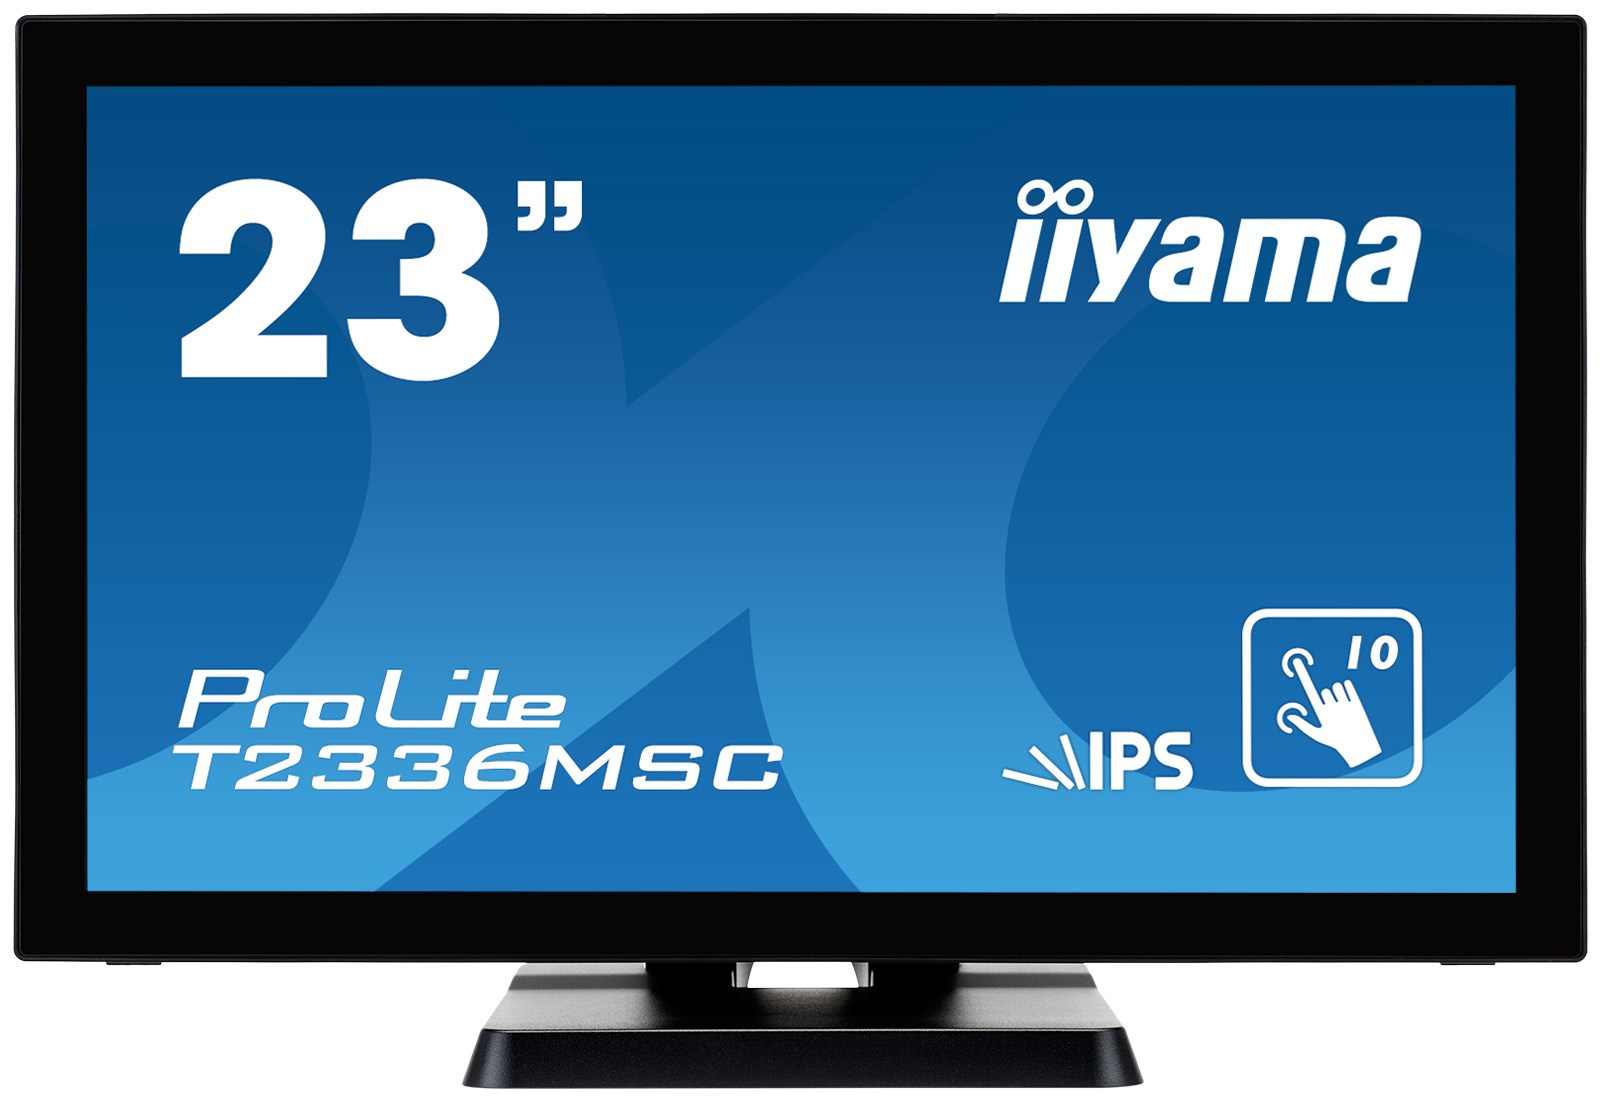 Iiyama t2336msc b2 23 inch led ips touchscreen monitor full hd iiyama t2336msc b2 23 full hd touchscreen monitor fandeluxe Gallery